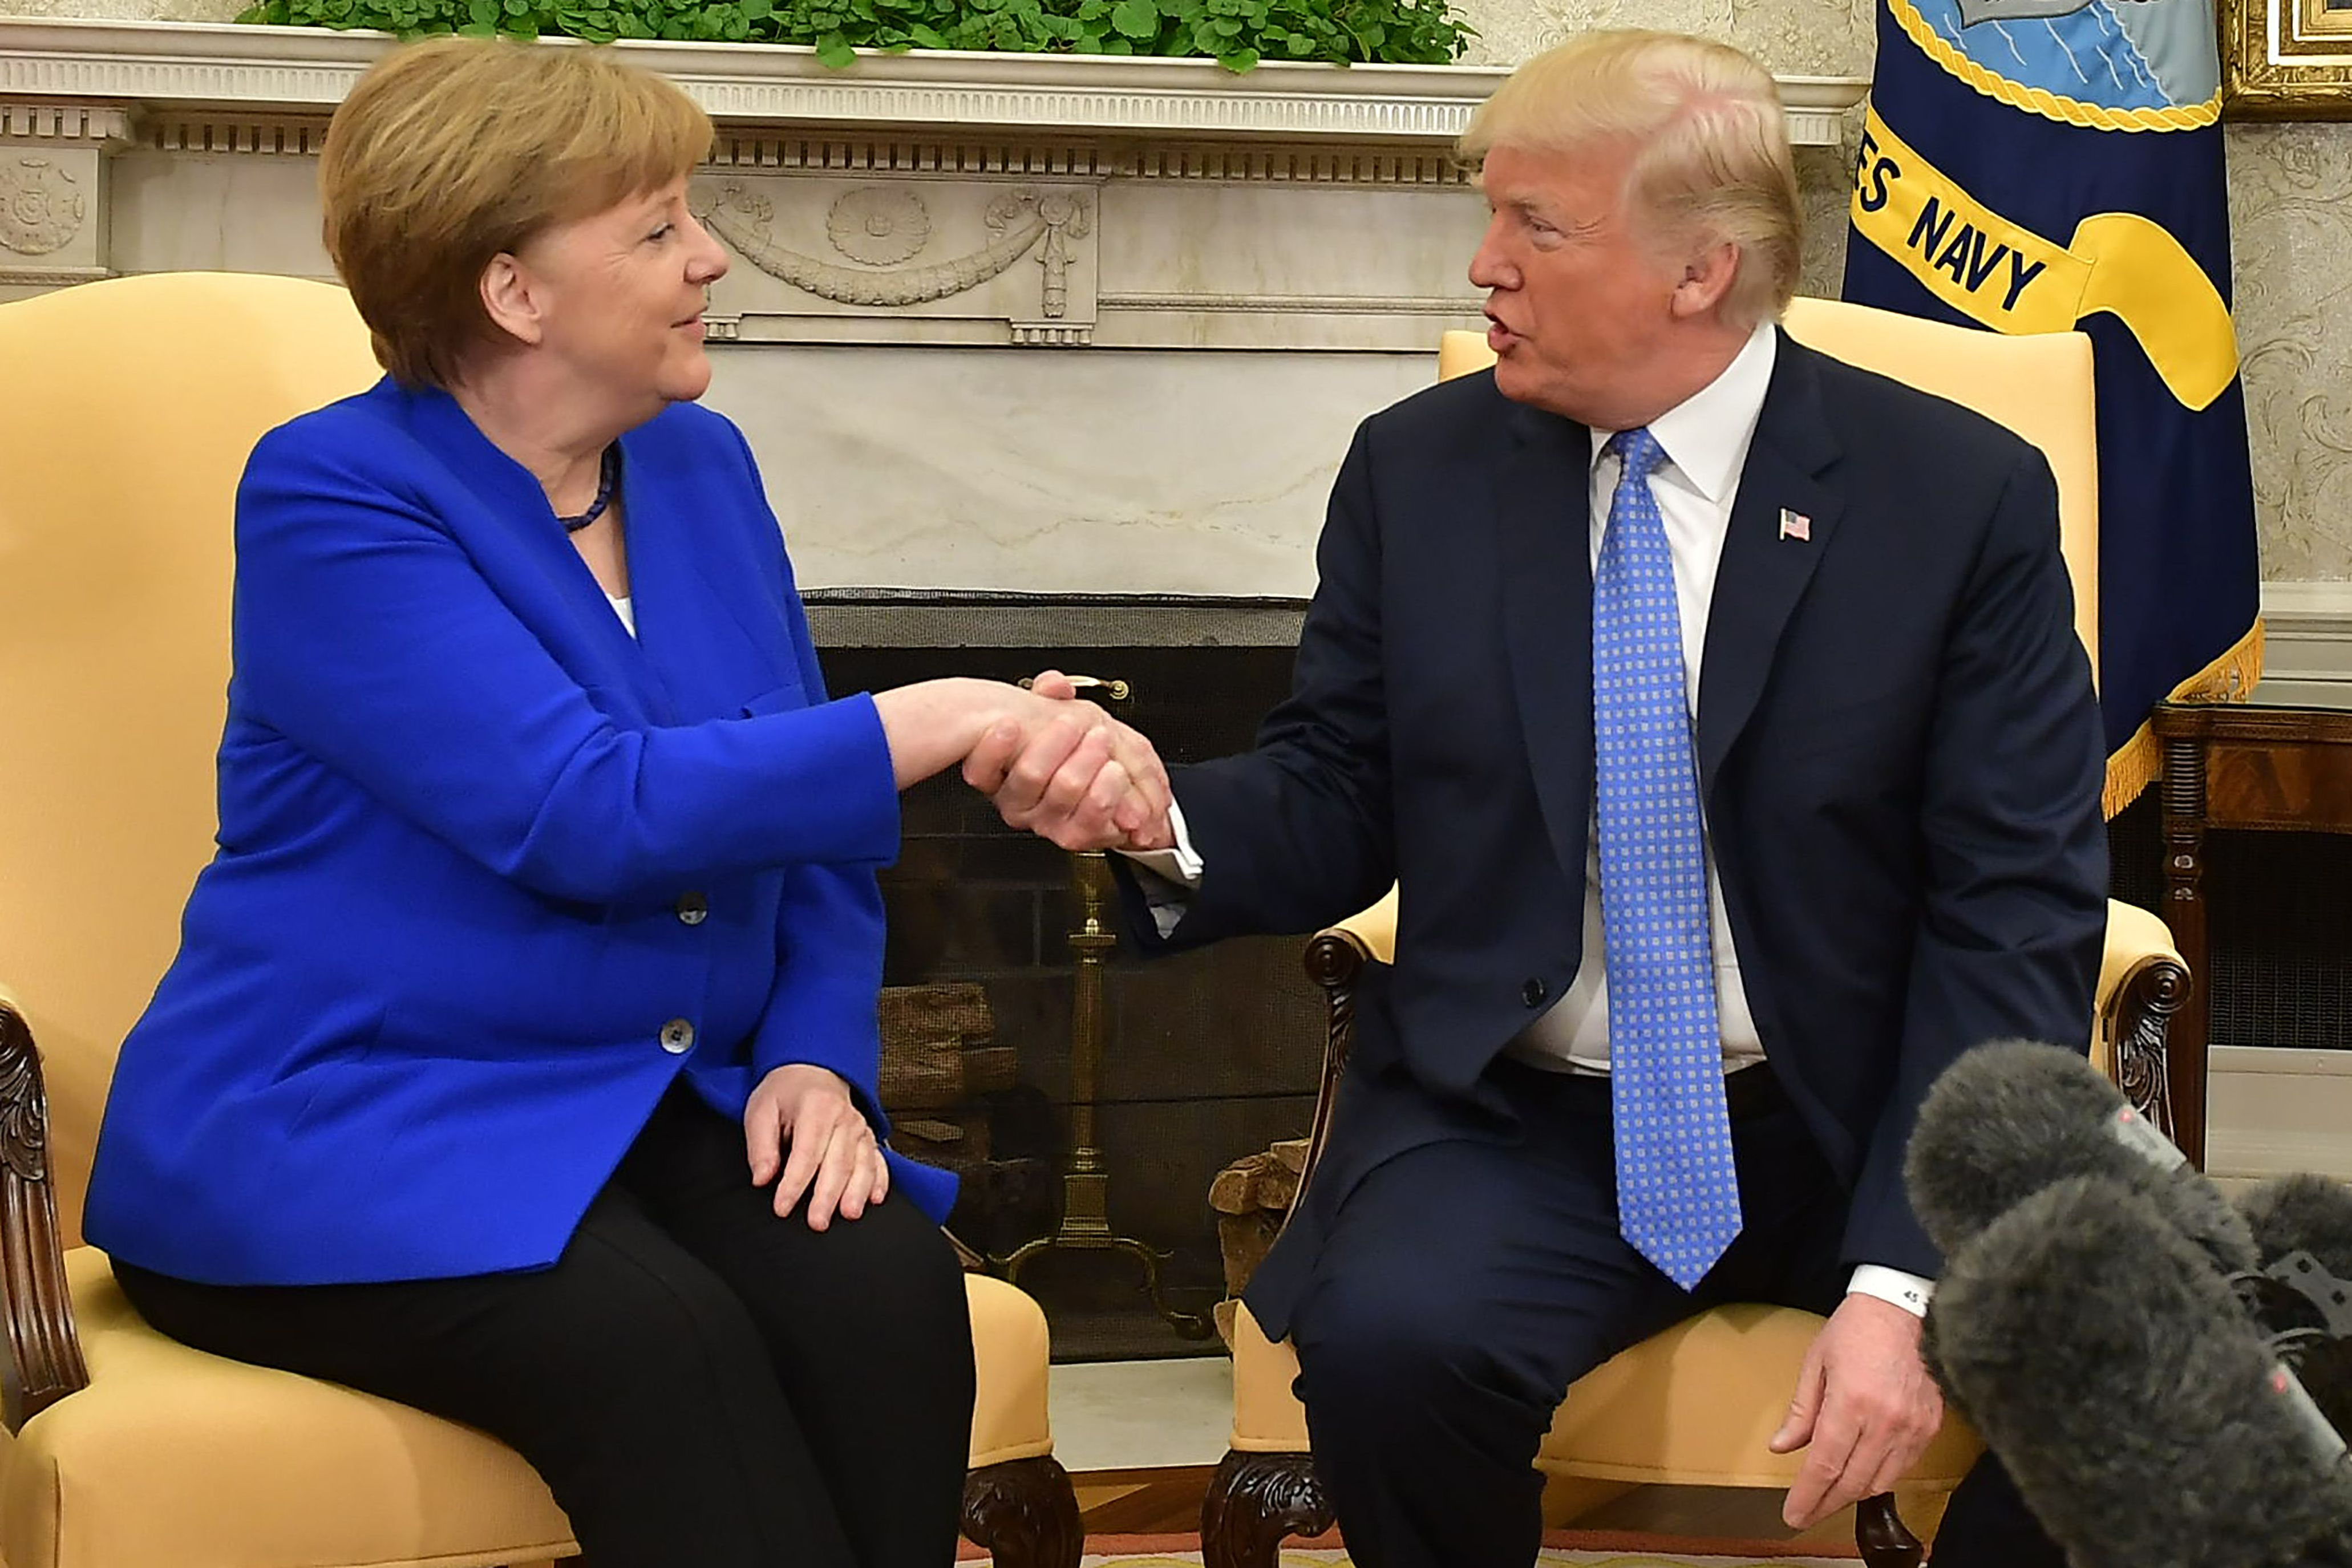 Trump and Merkel in the Oval